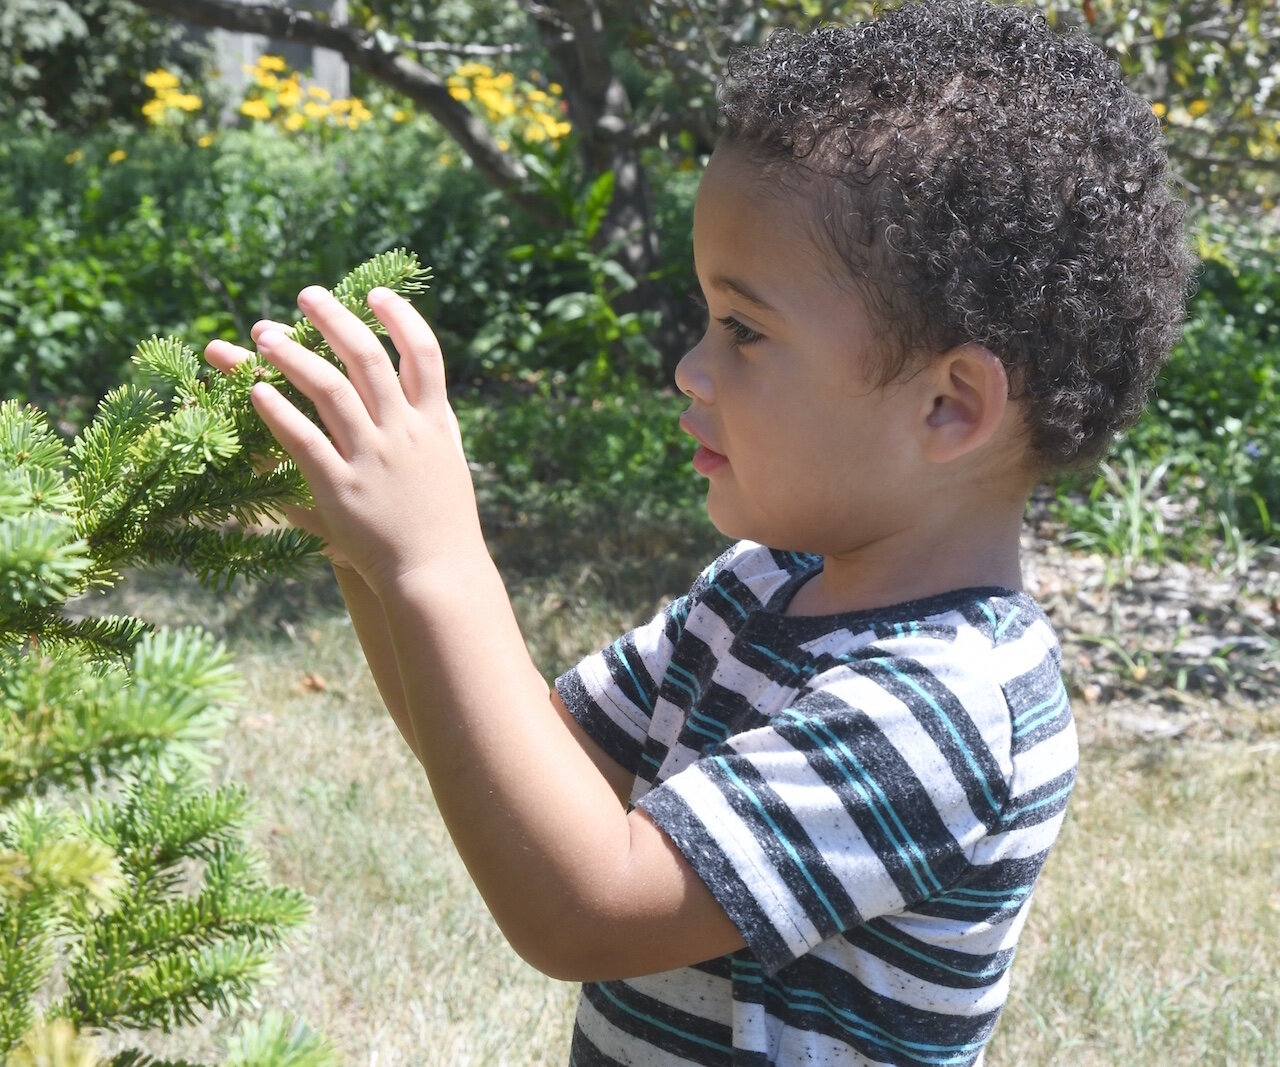 Greyson Hampton, 3, feels the needles of an evergreen tree at Leila Arboretum.